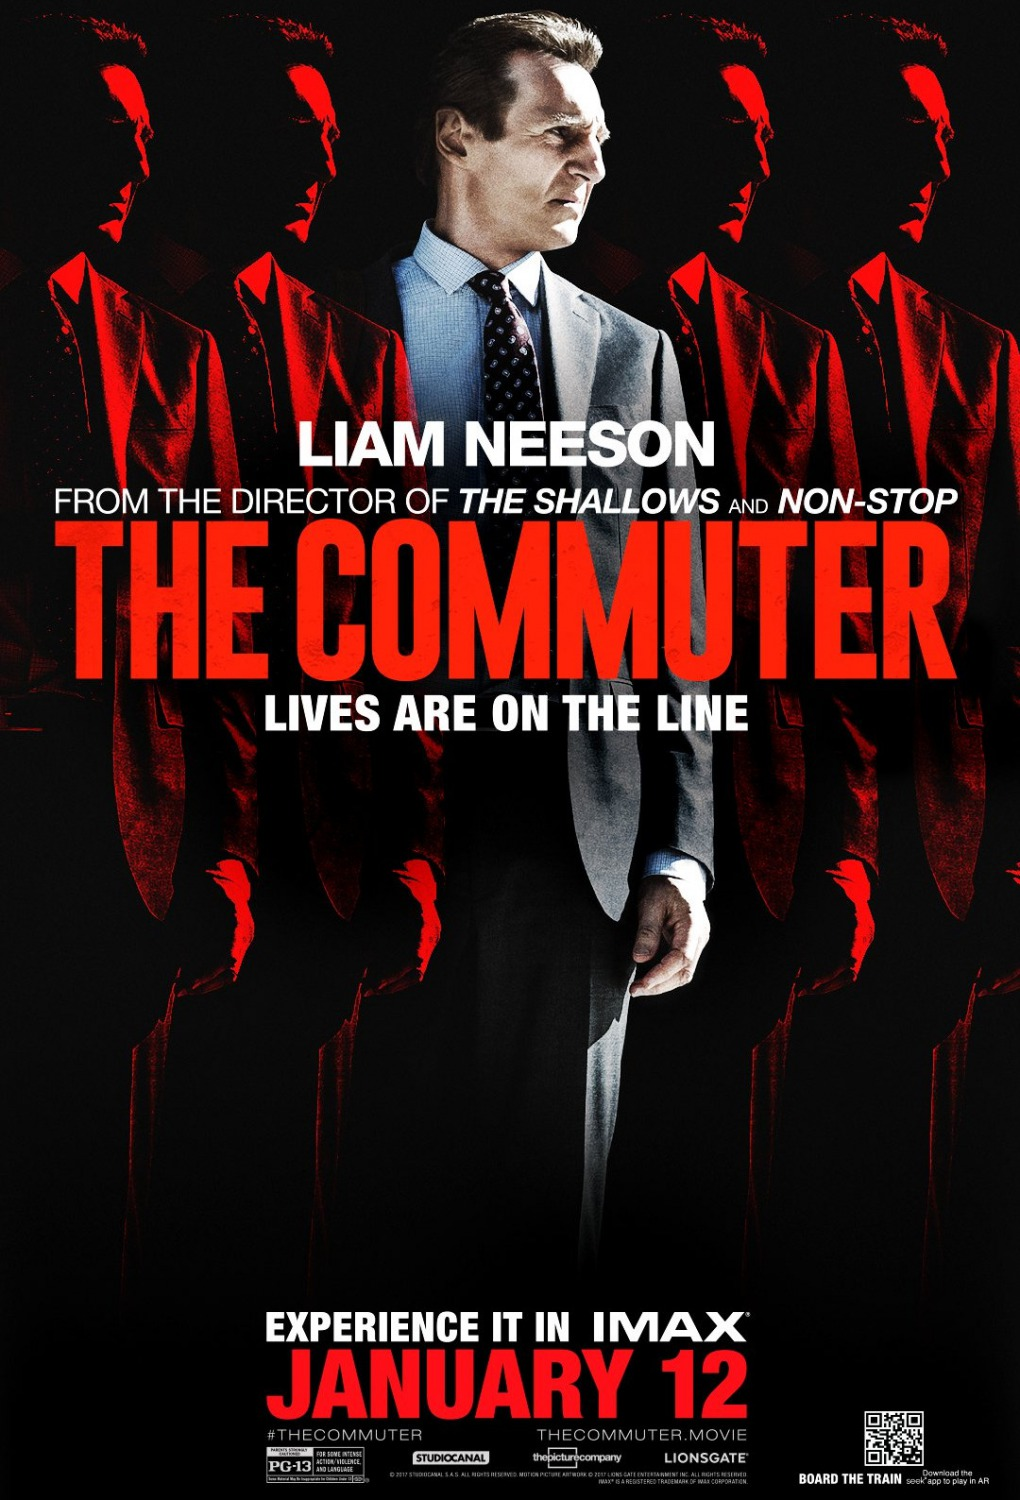 Trailer and Poster of The Commuter starring Liam Neeson